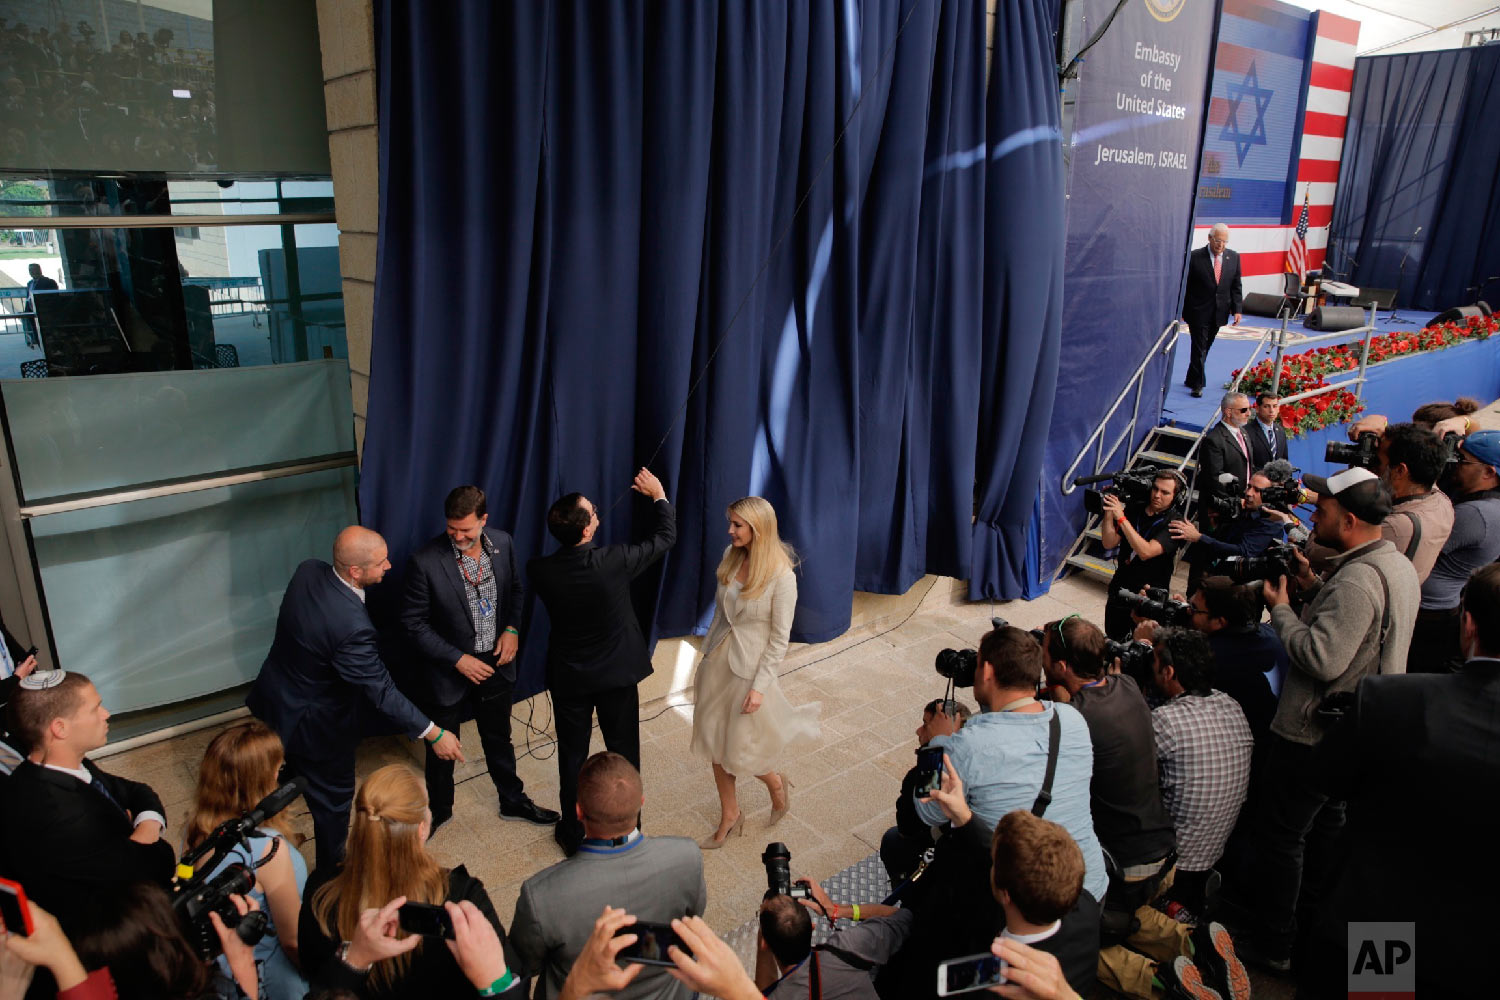 U.S. President Donald Trump's daughter Ivanka Trump, right, and U.S. Treasury Secretary Steve Mnuchin unveil an inauguration plaque during the opening ceremony of the new US embassy in Jerusalem, Monday, May 14, 2018. (AP Photo/Sebastian Scheiner)